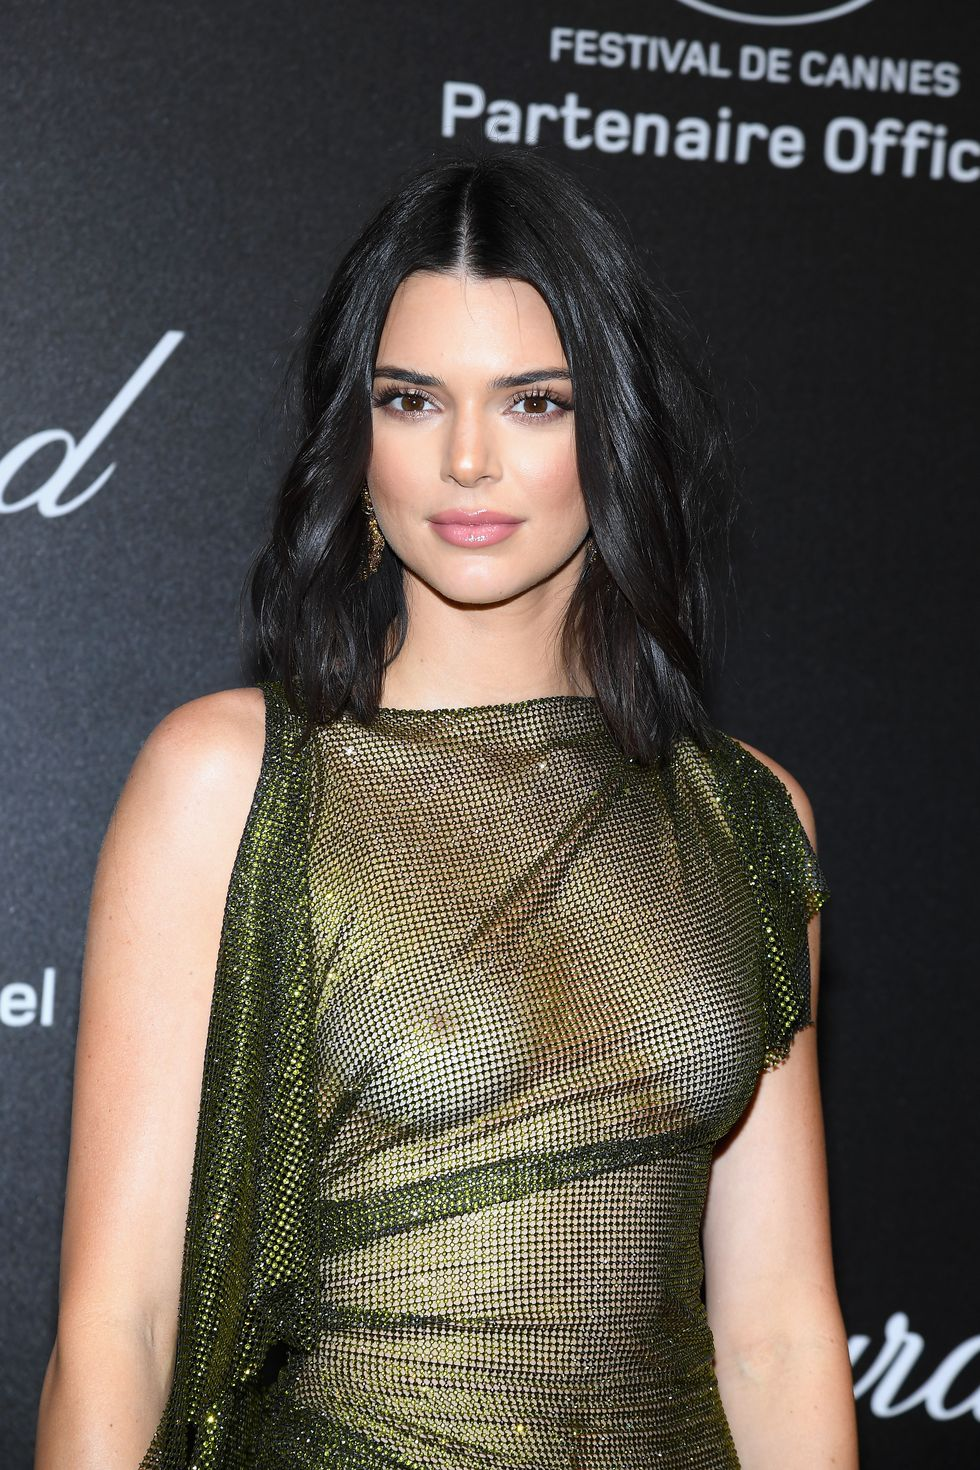 kendall jenner just freed the nips in a completely see-through dress